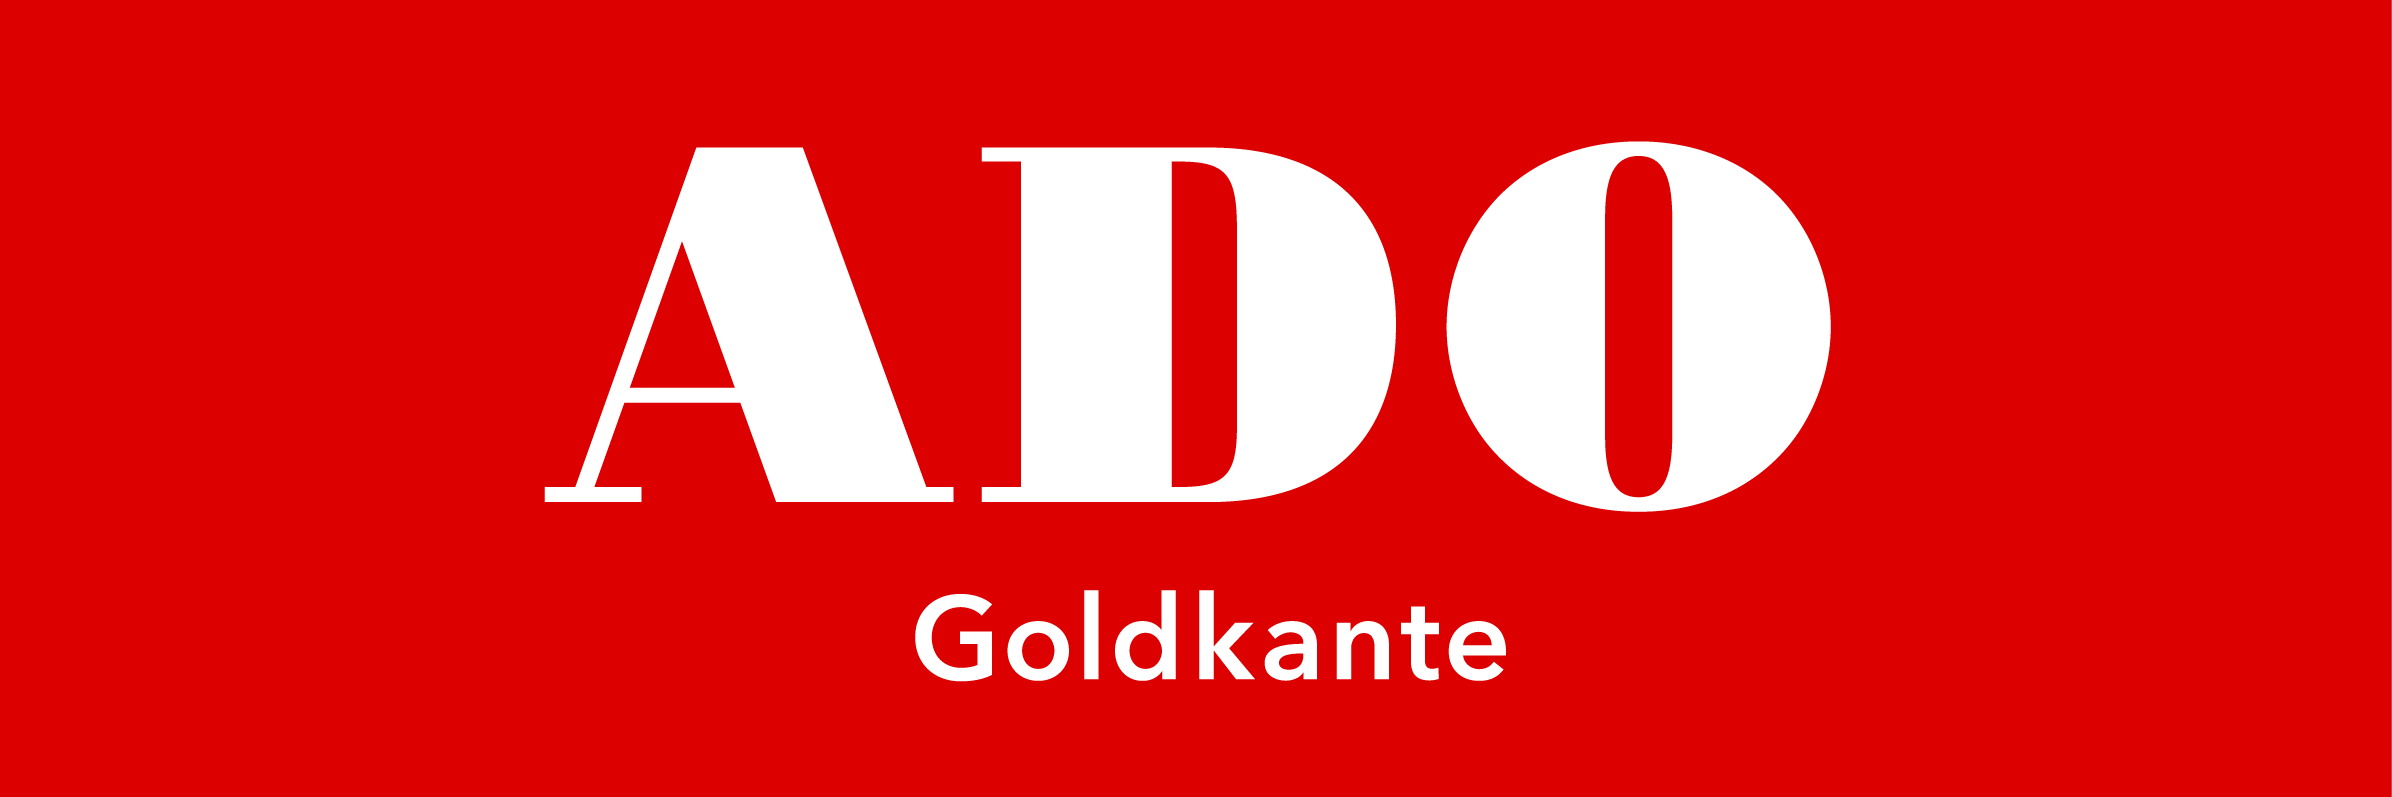 ADO Goldkante GmbH & Co. KG